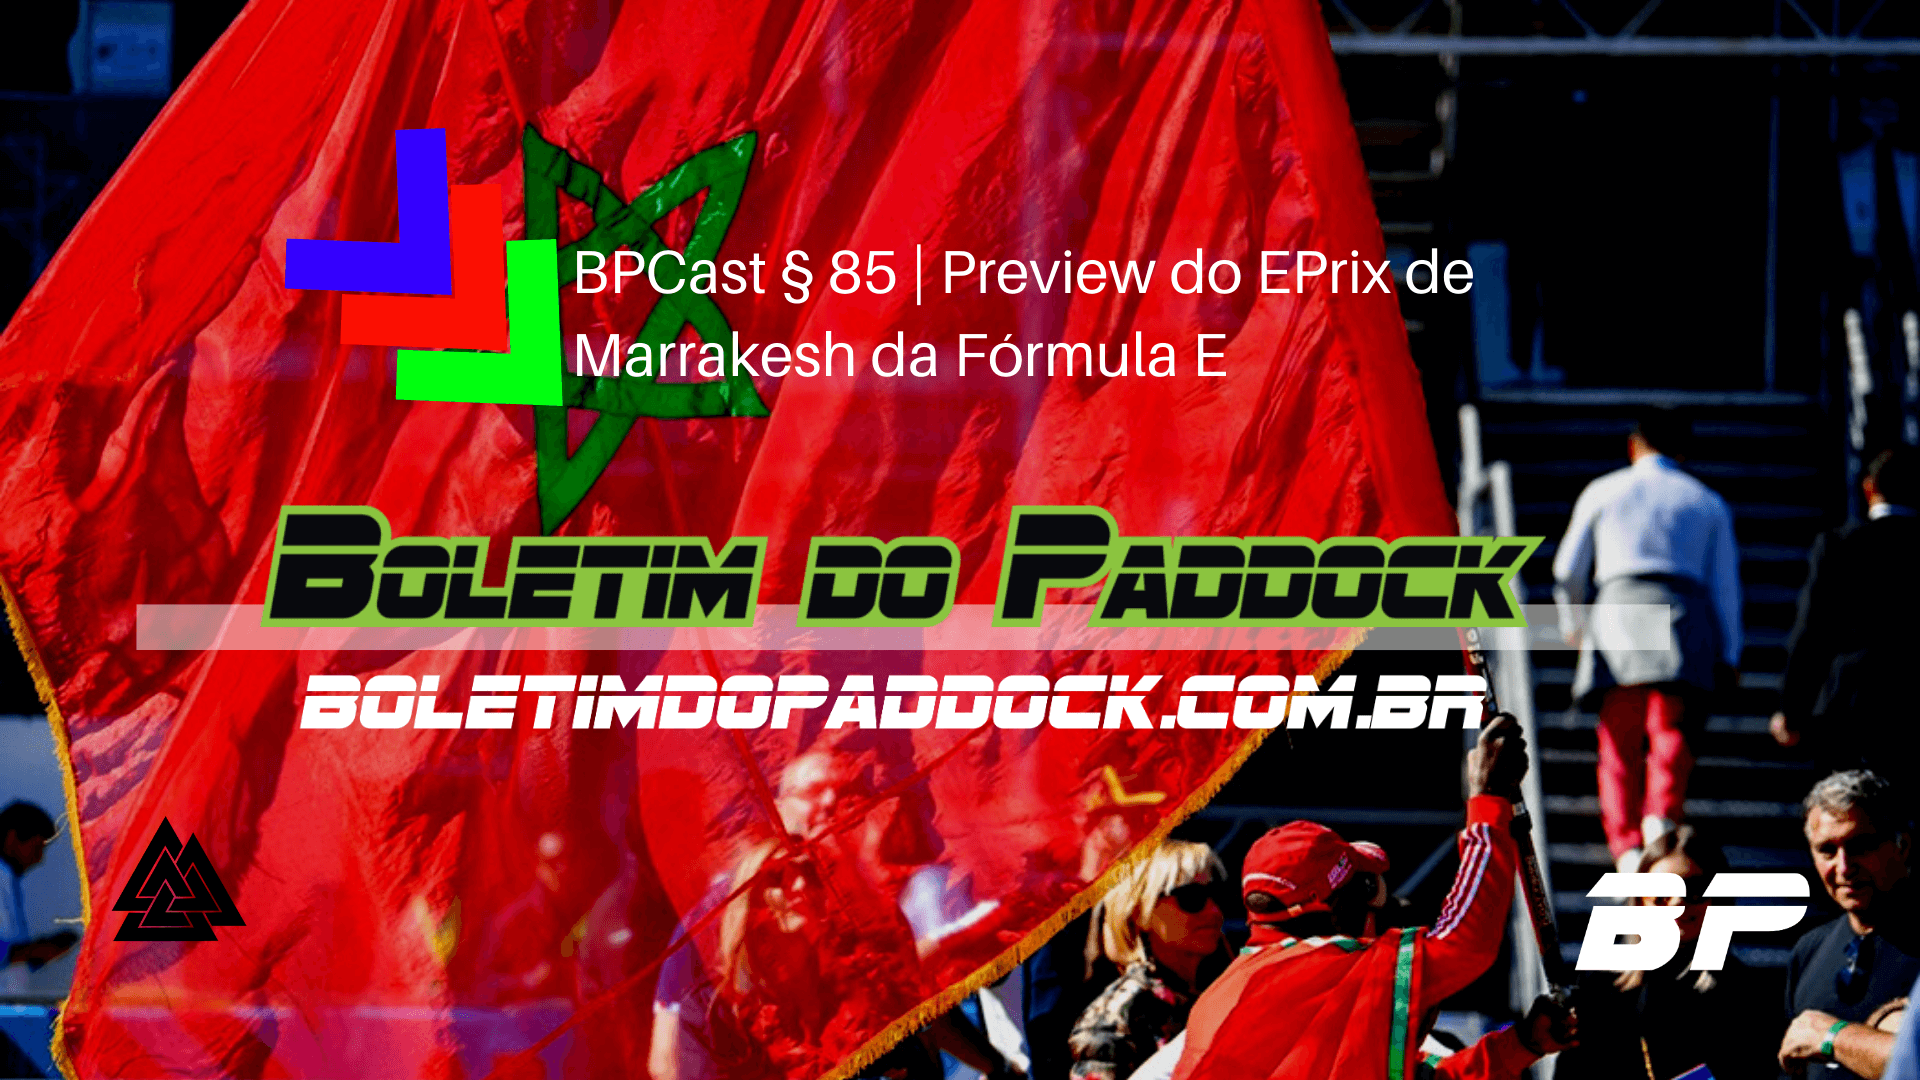 Foto de Vídeo do BPCast § 85 | Peview do EPrix de Marrakesh da Fórmula E